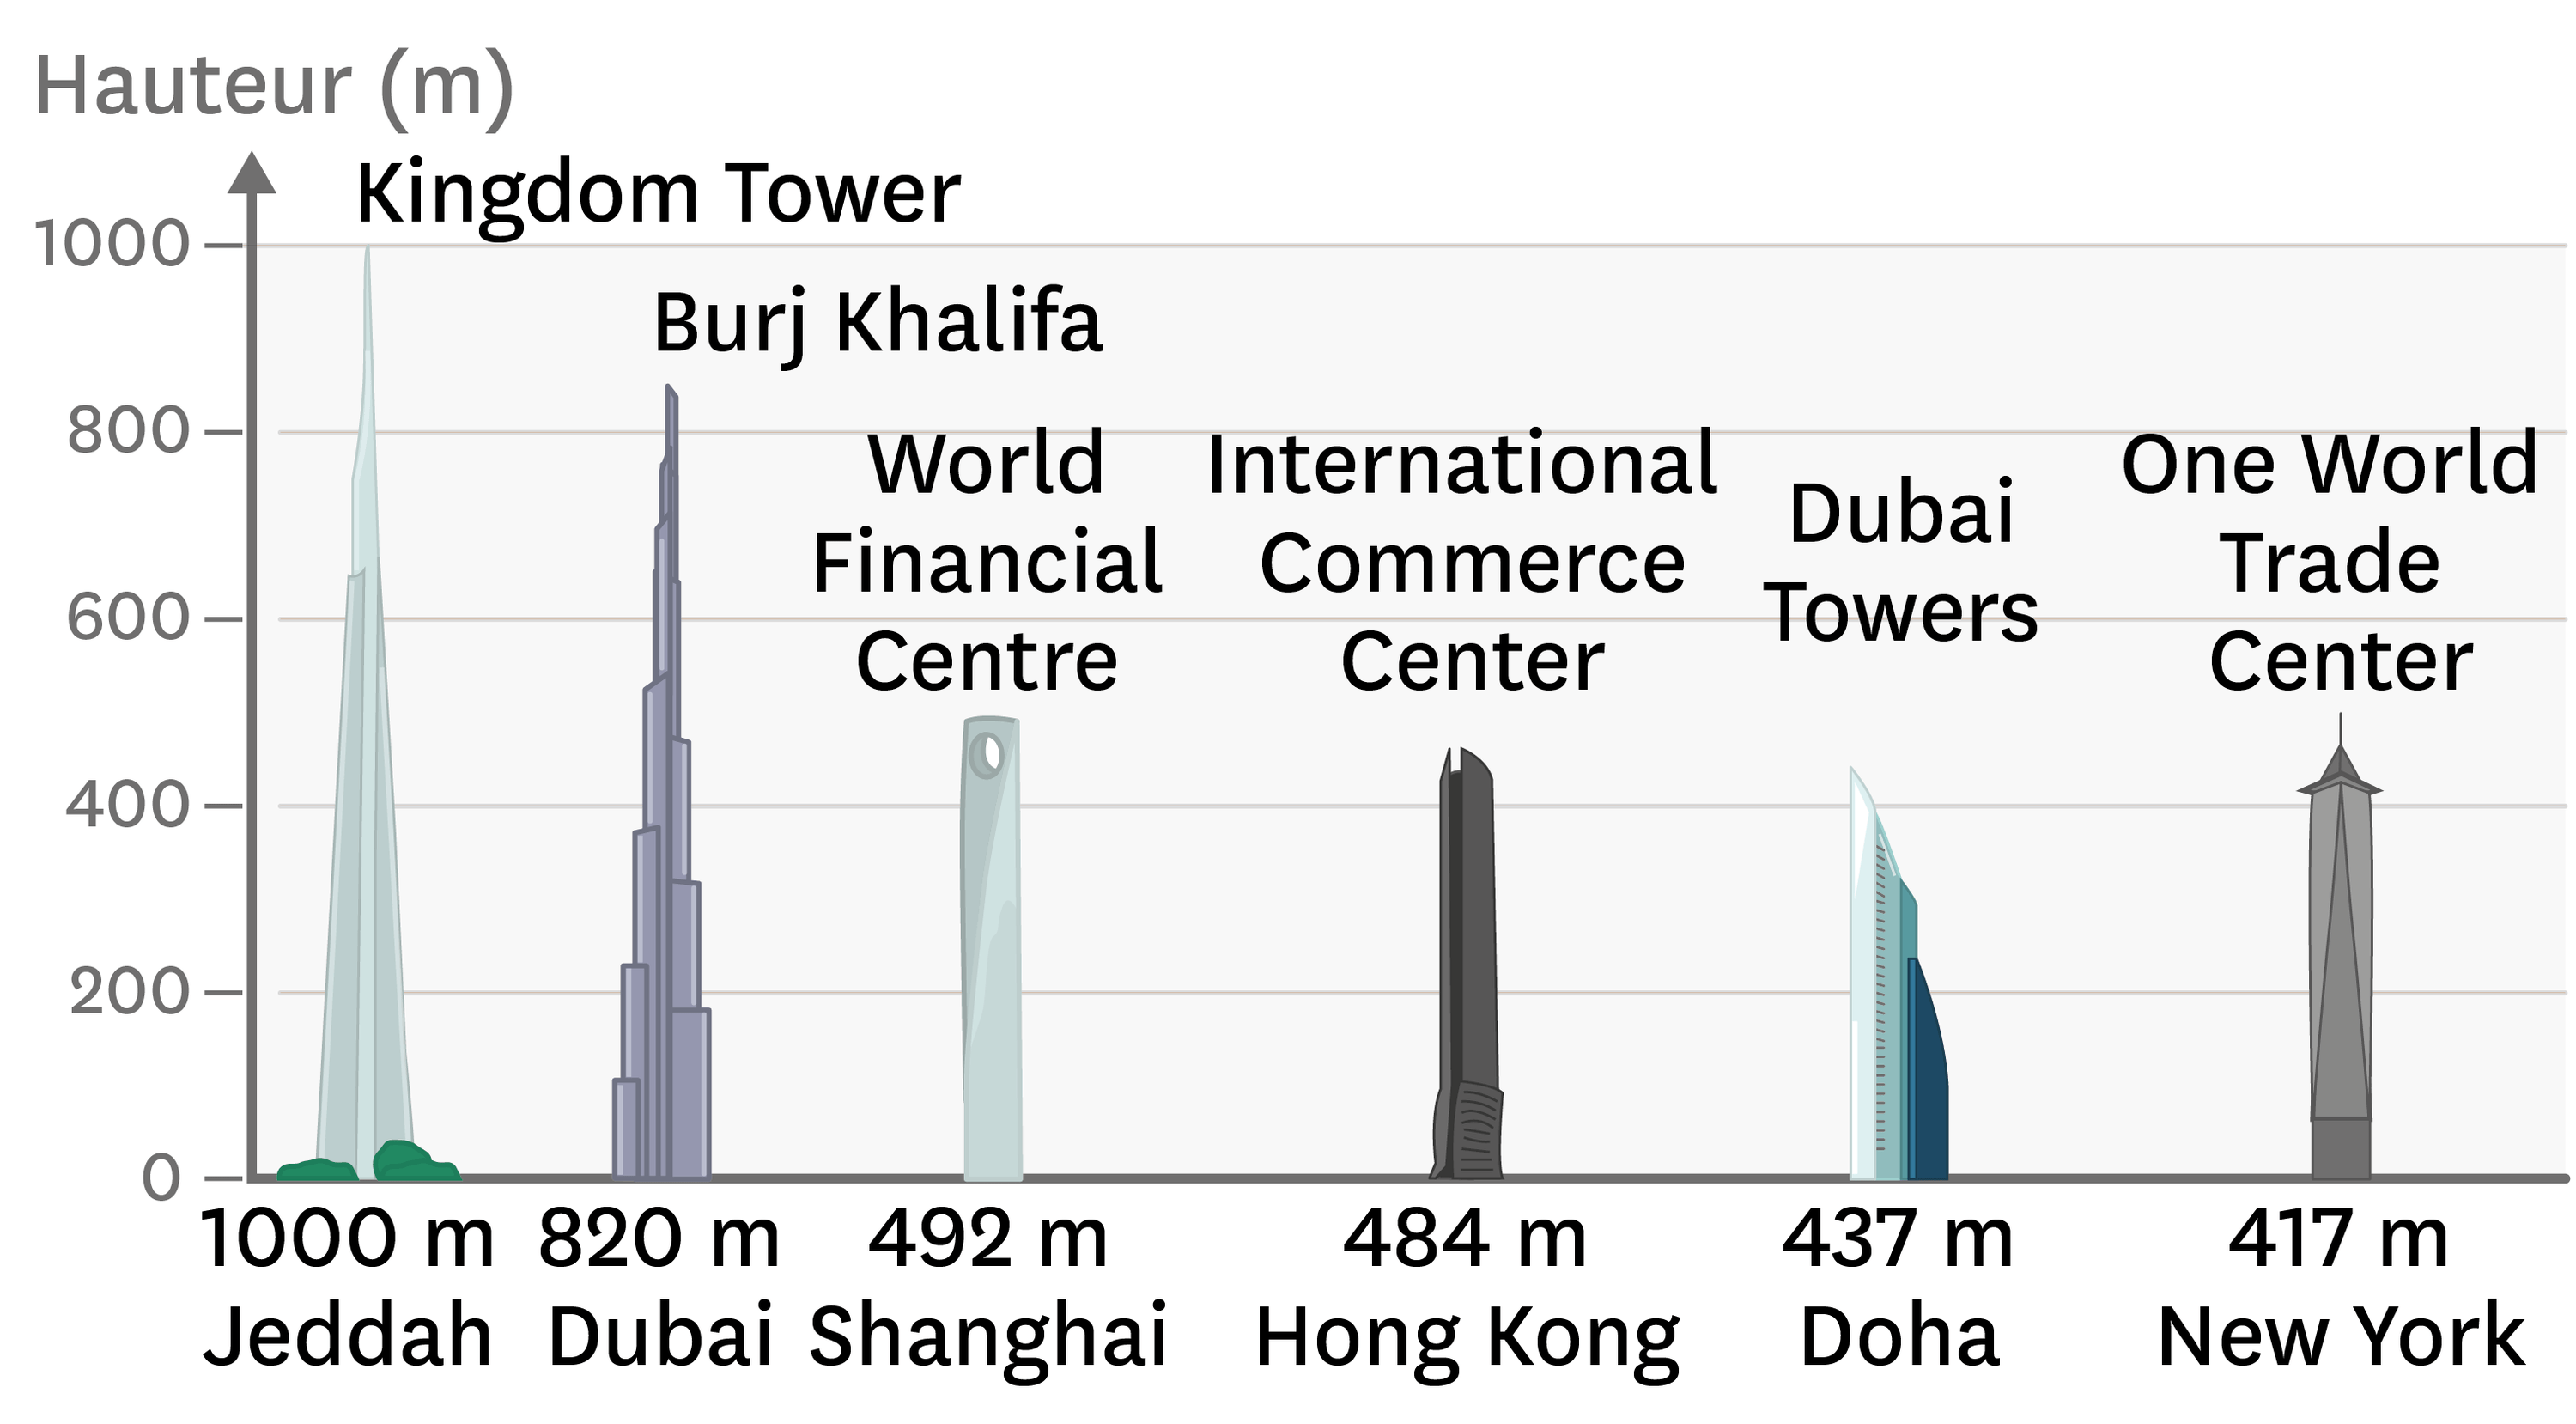 La hauteur des plus grands gratte-ciels : l'exemple de la construction de la Kingdom Tower.